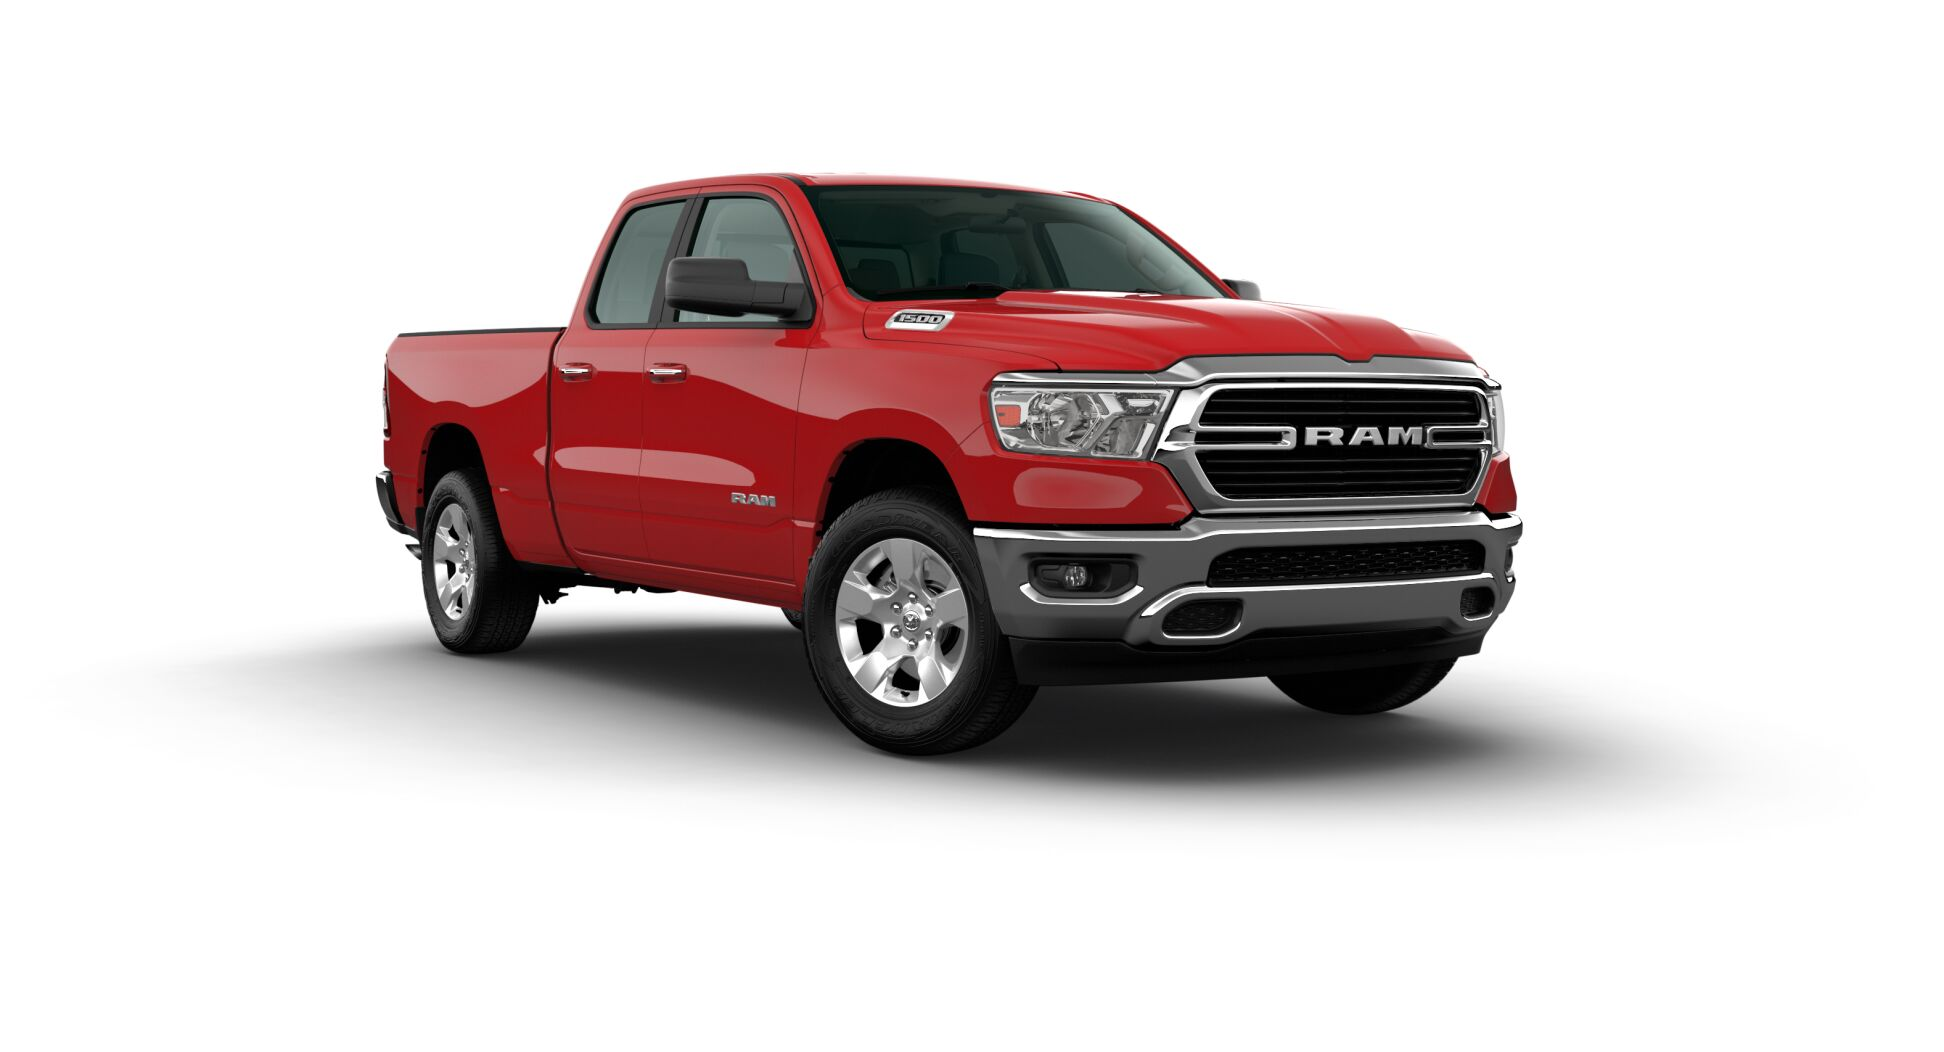 2020 ram 1500 big horn lampe chrysler dodge jeep ram visalia ca 2020 ram 1500 big horn lampe chrysler